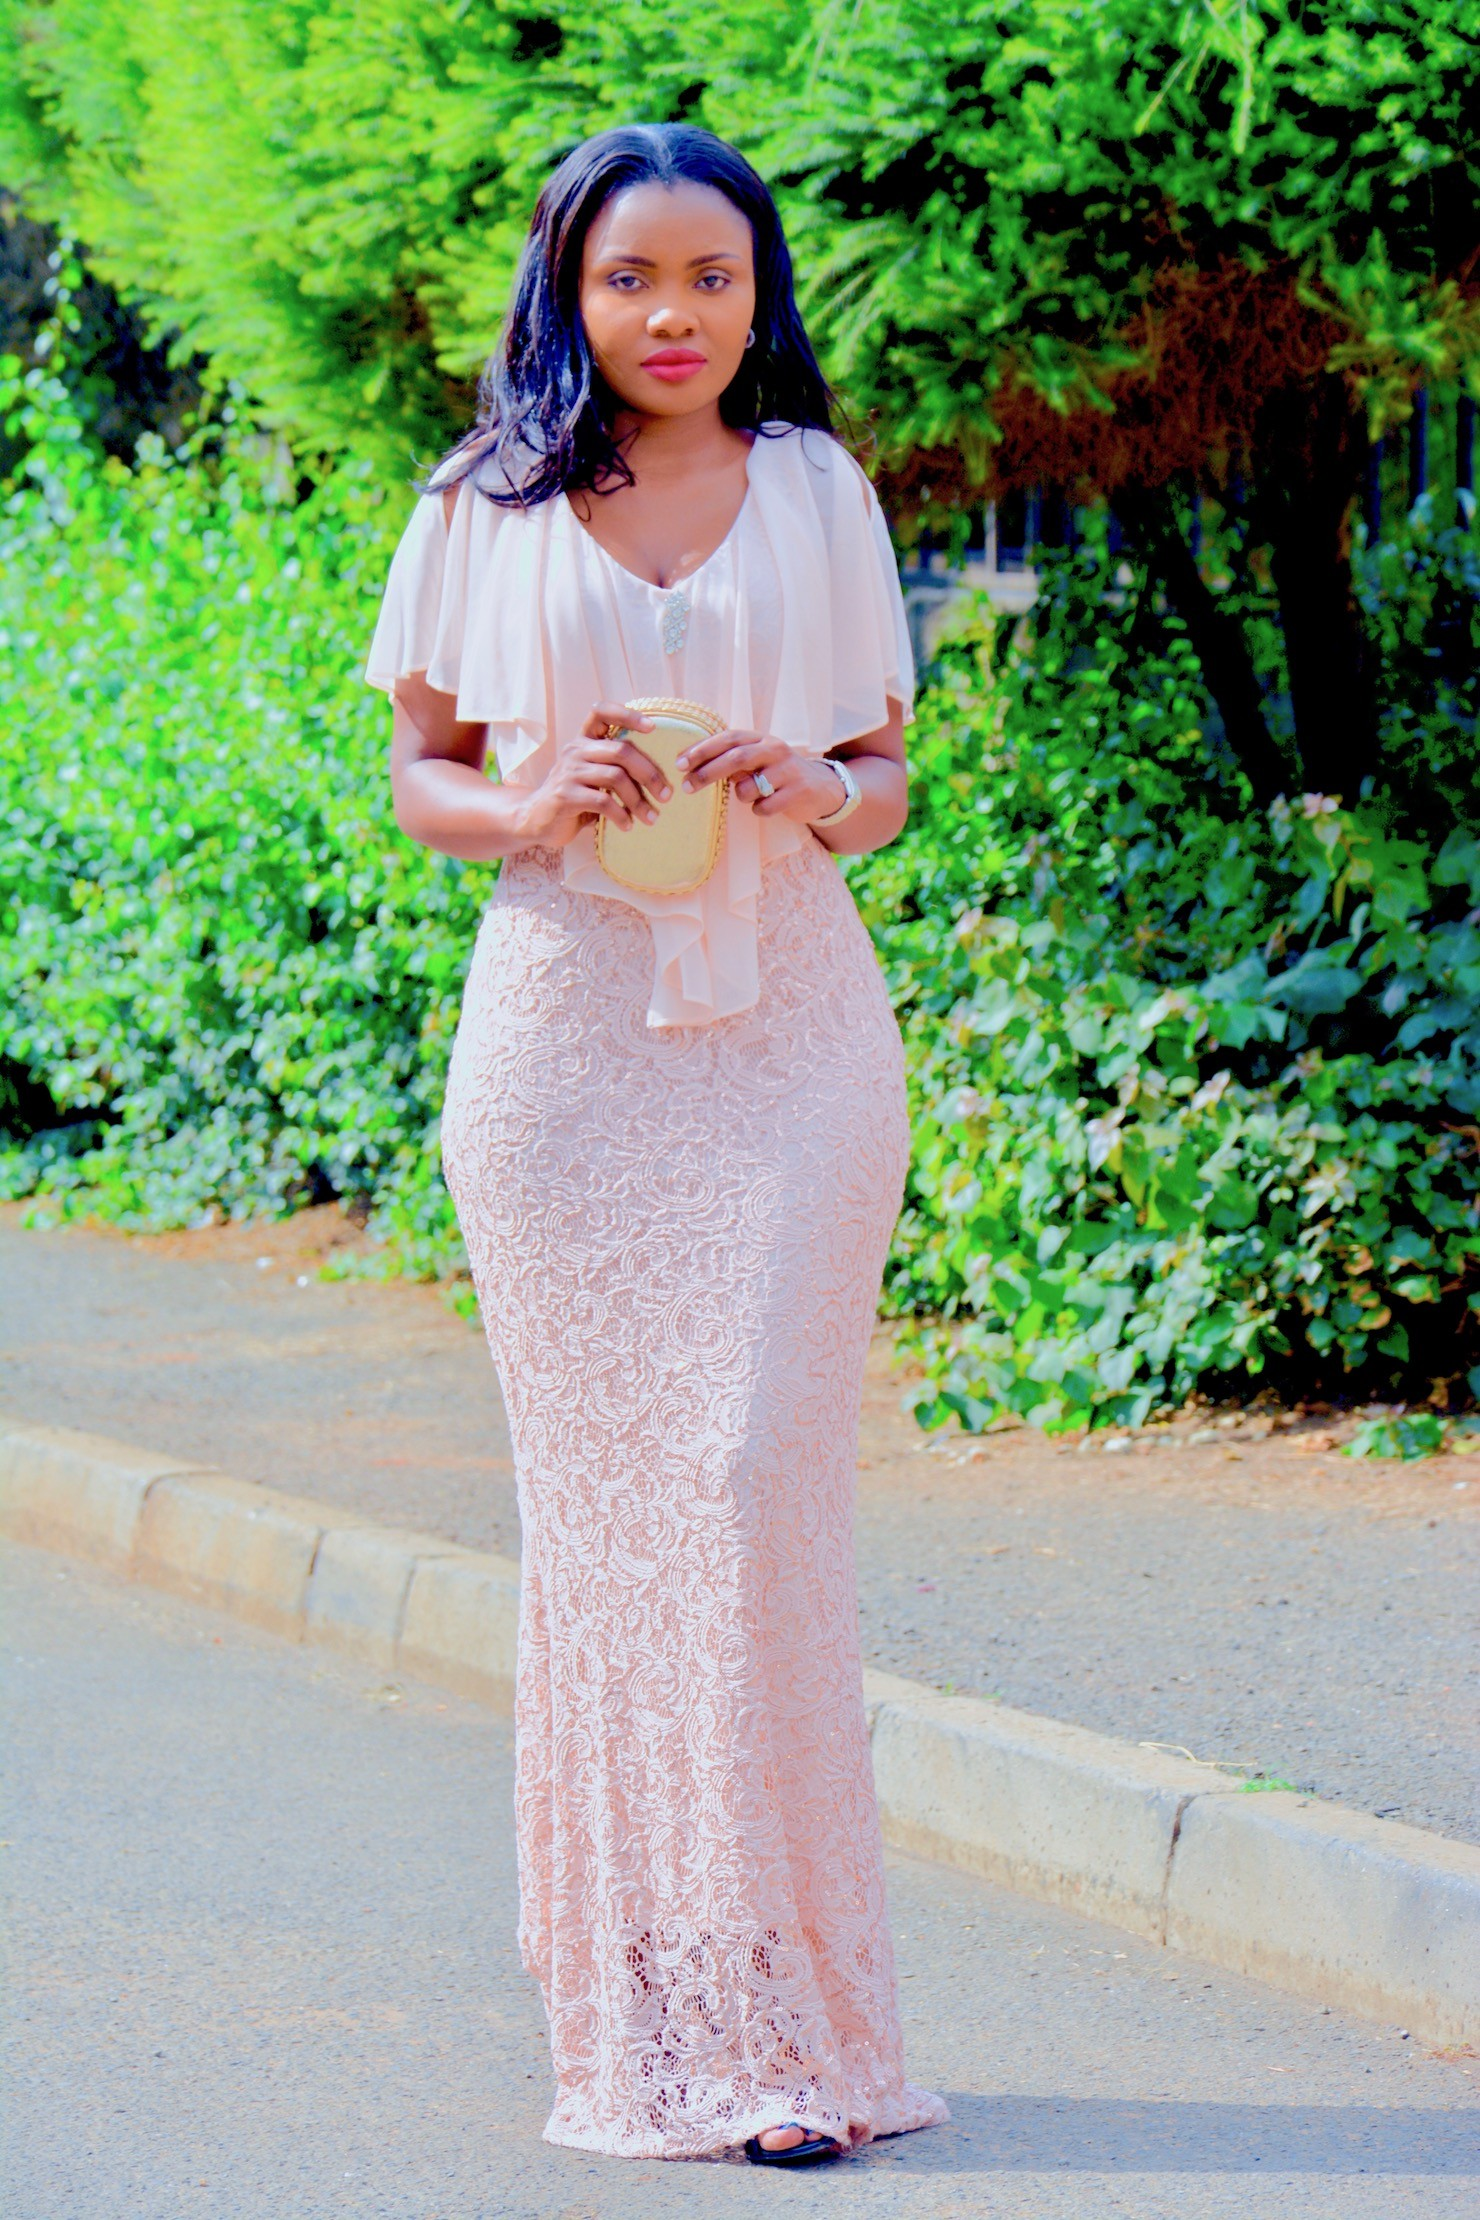 GLAMOUR IN A BLUSH PINK GOWN